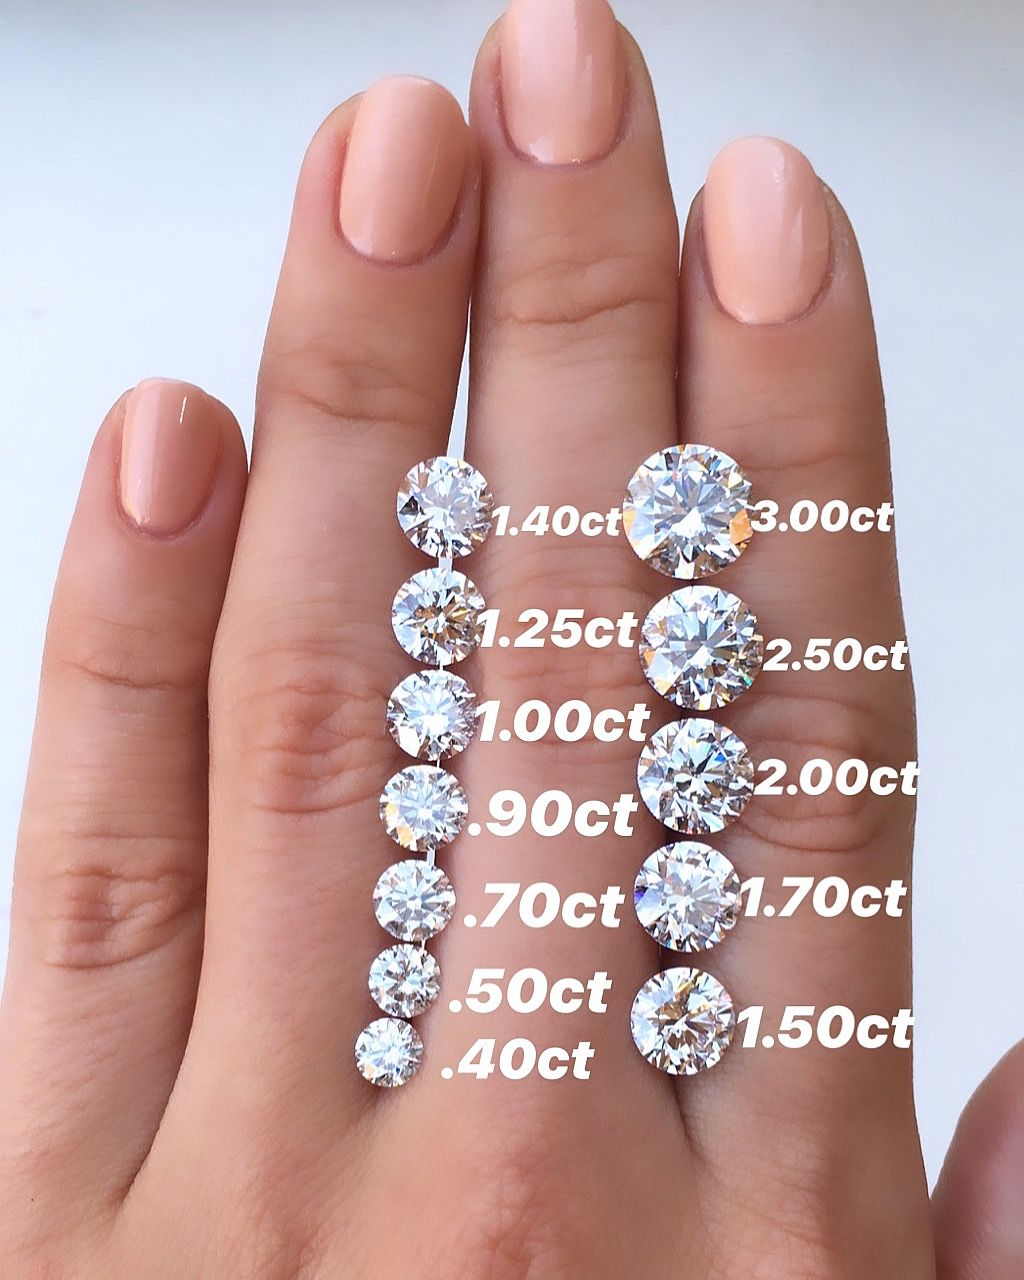 Diamond Size Comparison Diamond Wedding Sets Lab Created Diamond Rings Wedding Ring Sets